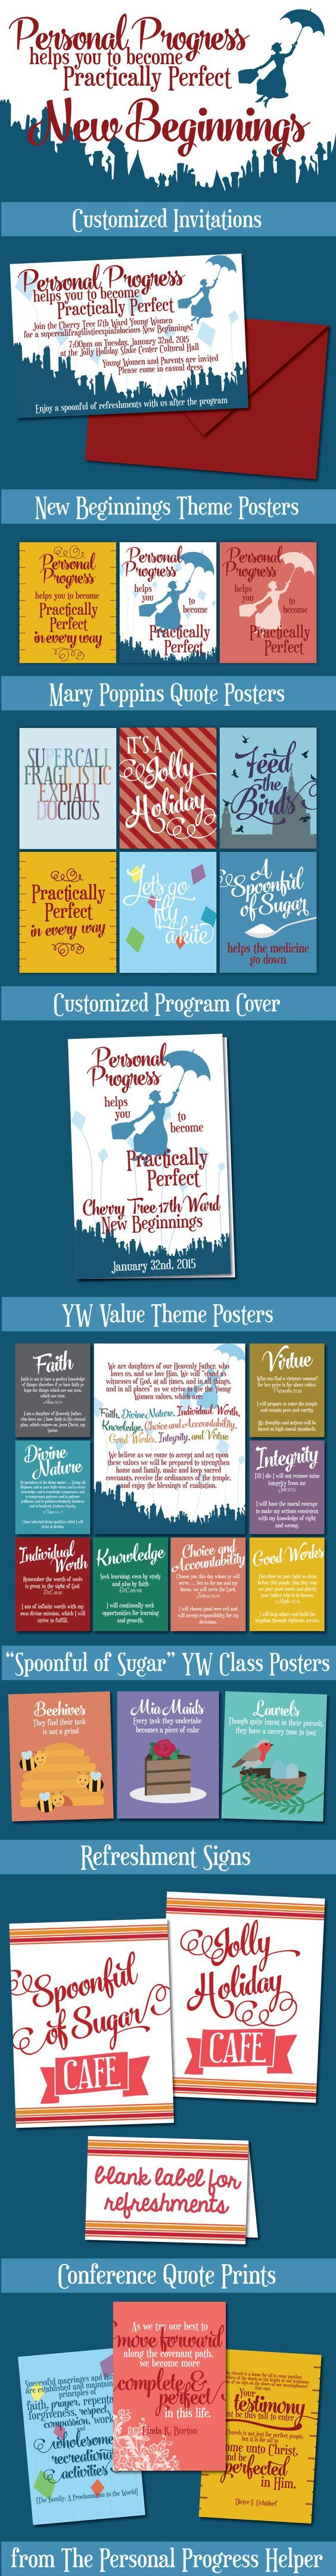 """TONS of resources for LDS Young Women 2016 New Beginnings theme """"Personal Progress Helps You to Become Practically Perfect"""" from Mary Poppins"""